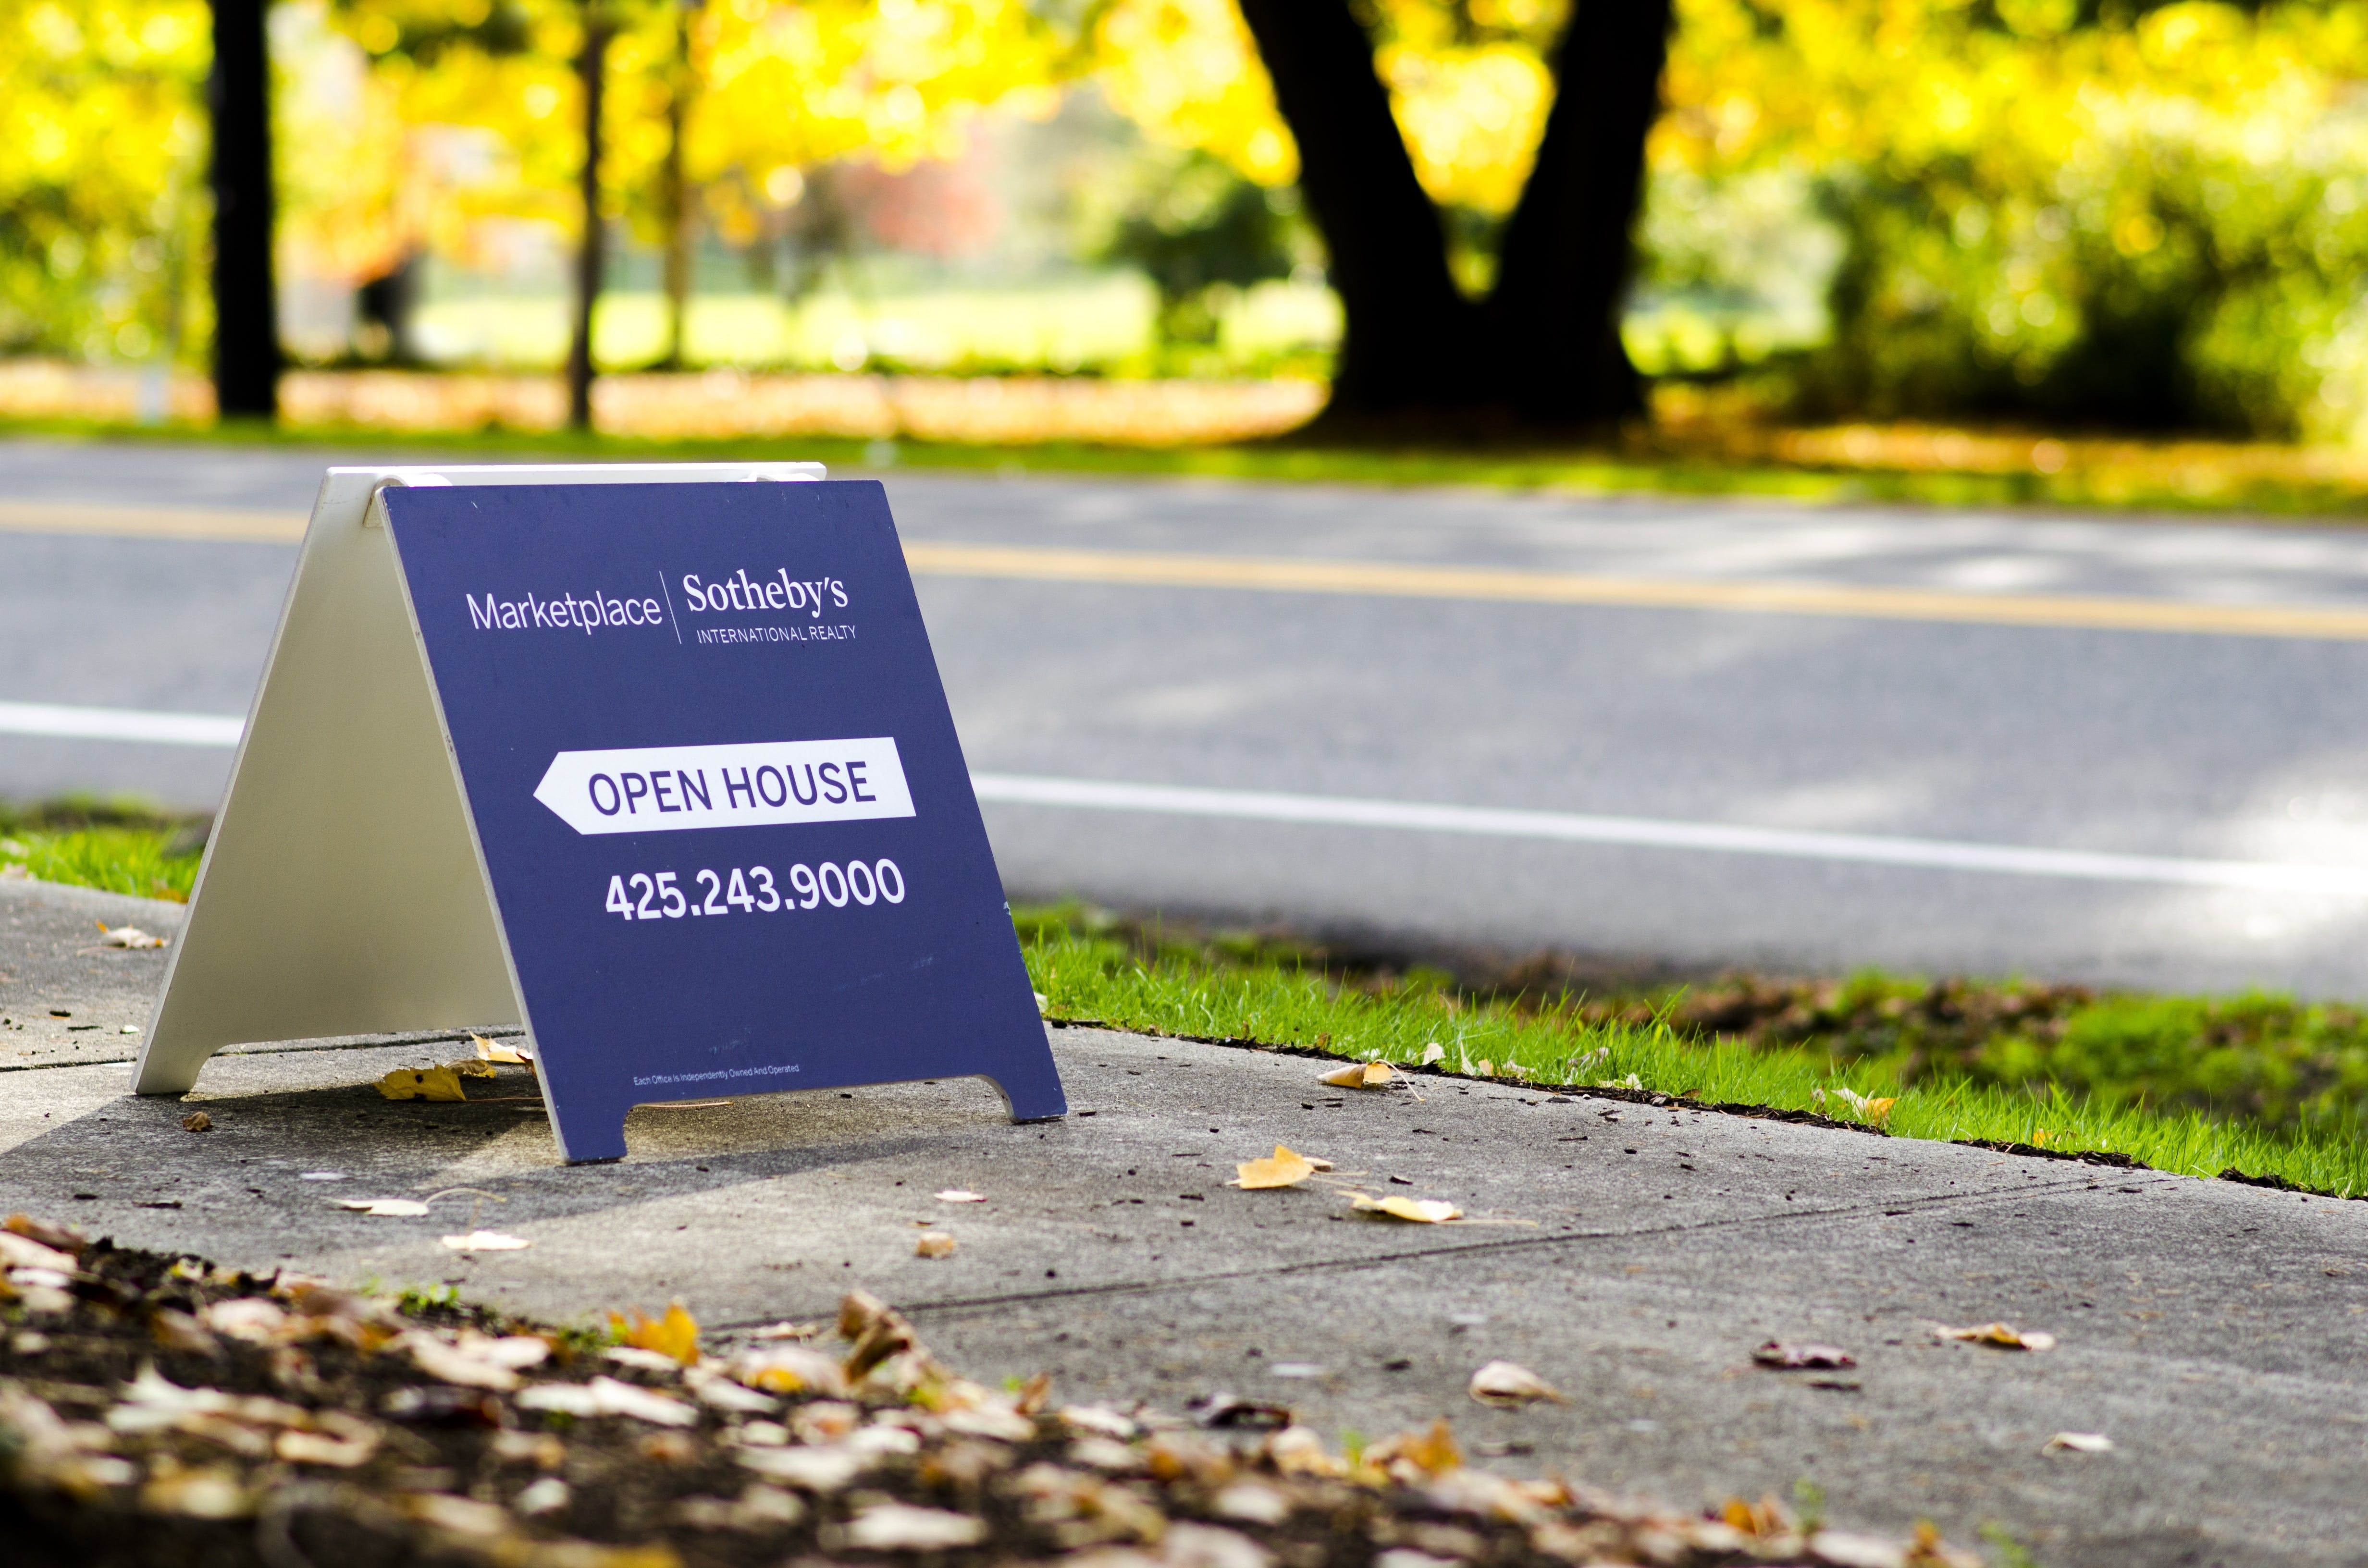 Blue Open House Stand Board on Concreted Road